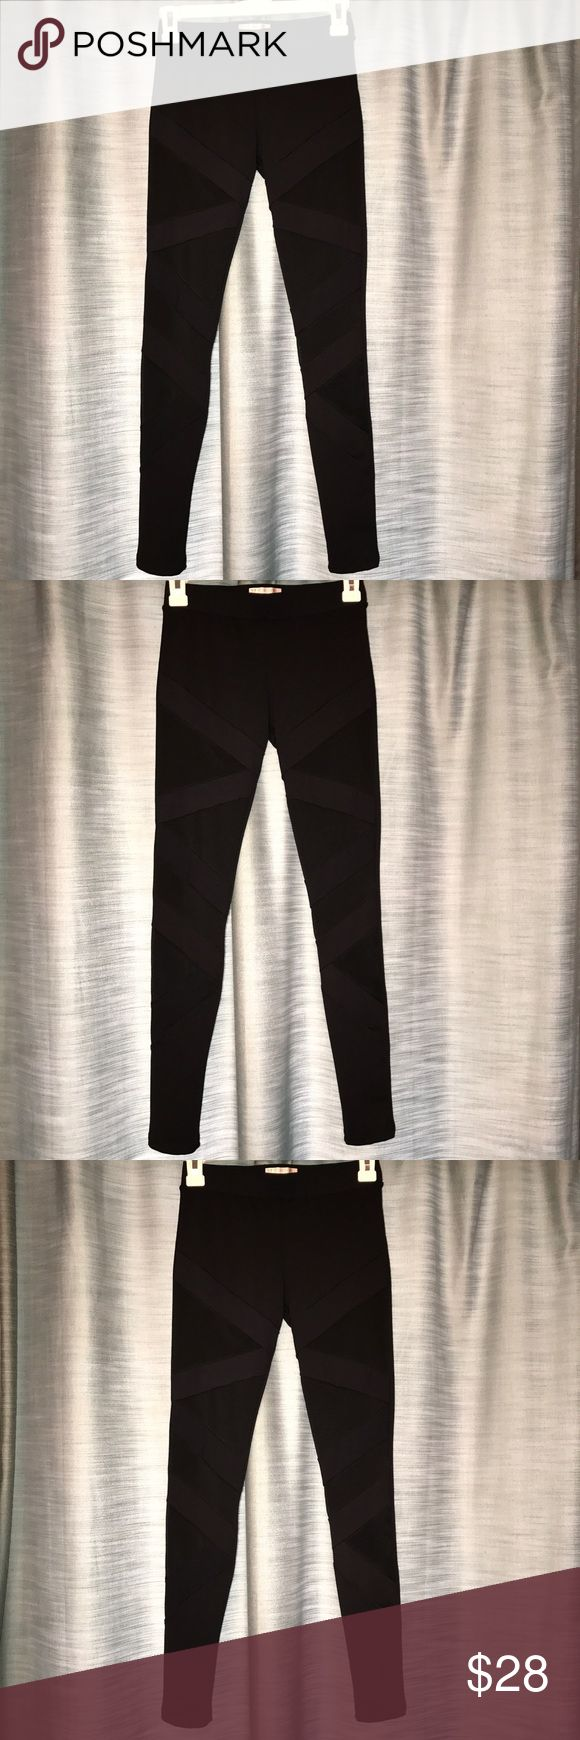 Leggings with mesh designs Leggings with crisscross mesh designs on the front. These were worn twice and are in great condition just haven't worn them anymore. Let me know if you have any questions! Pants Leggings